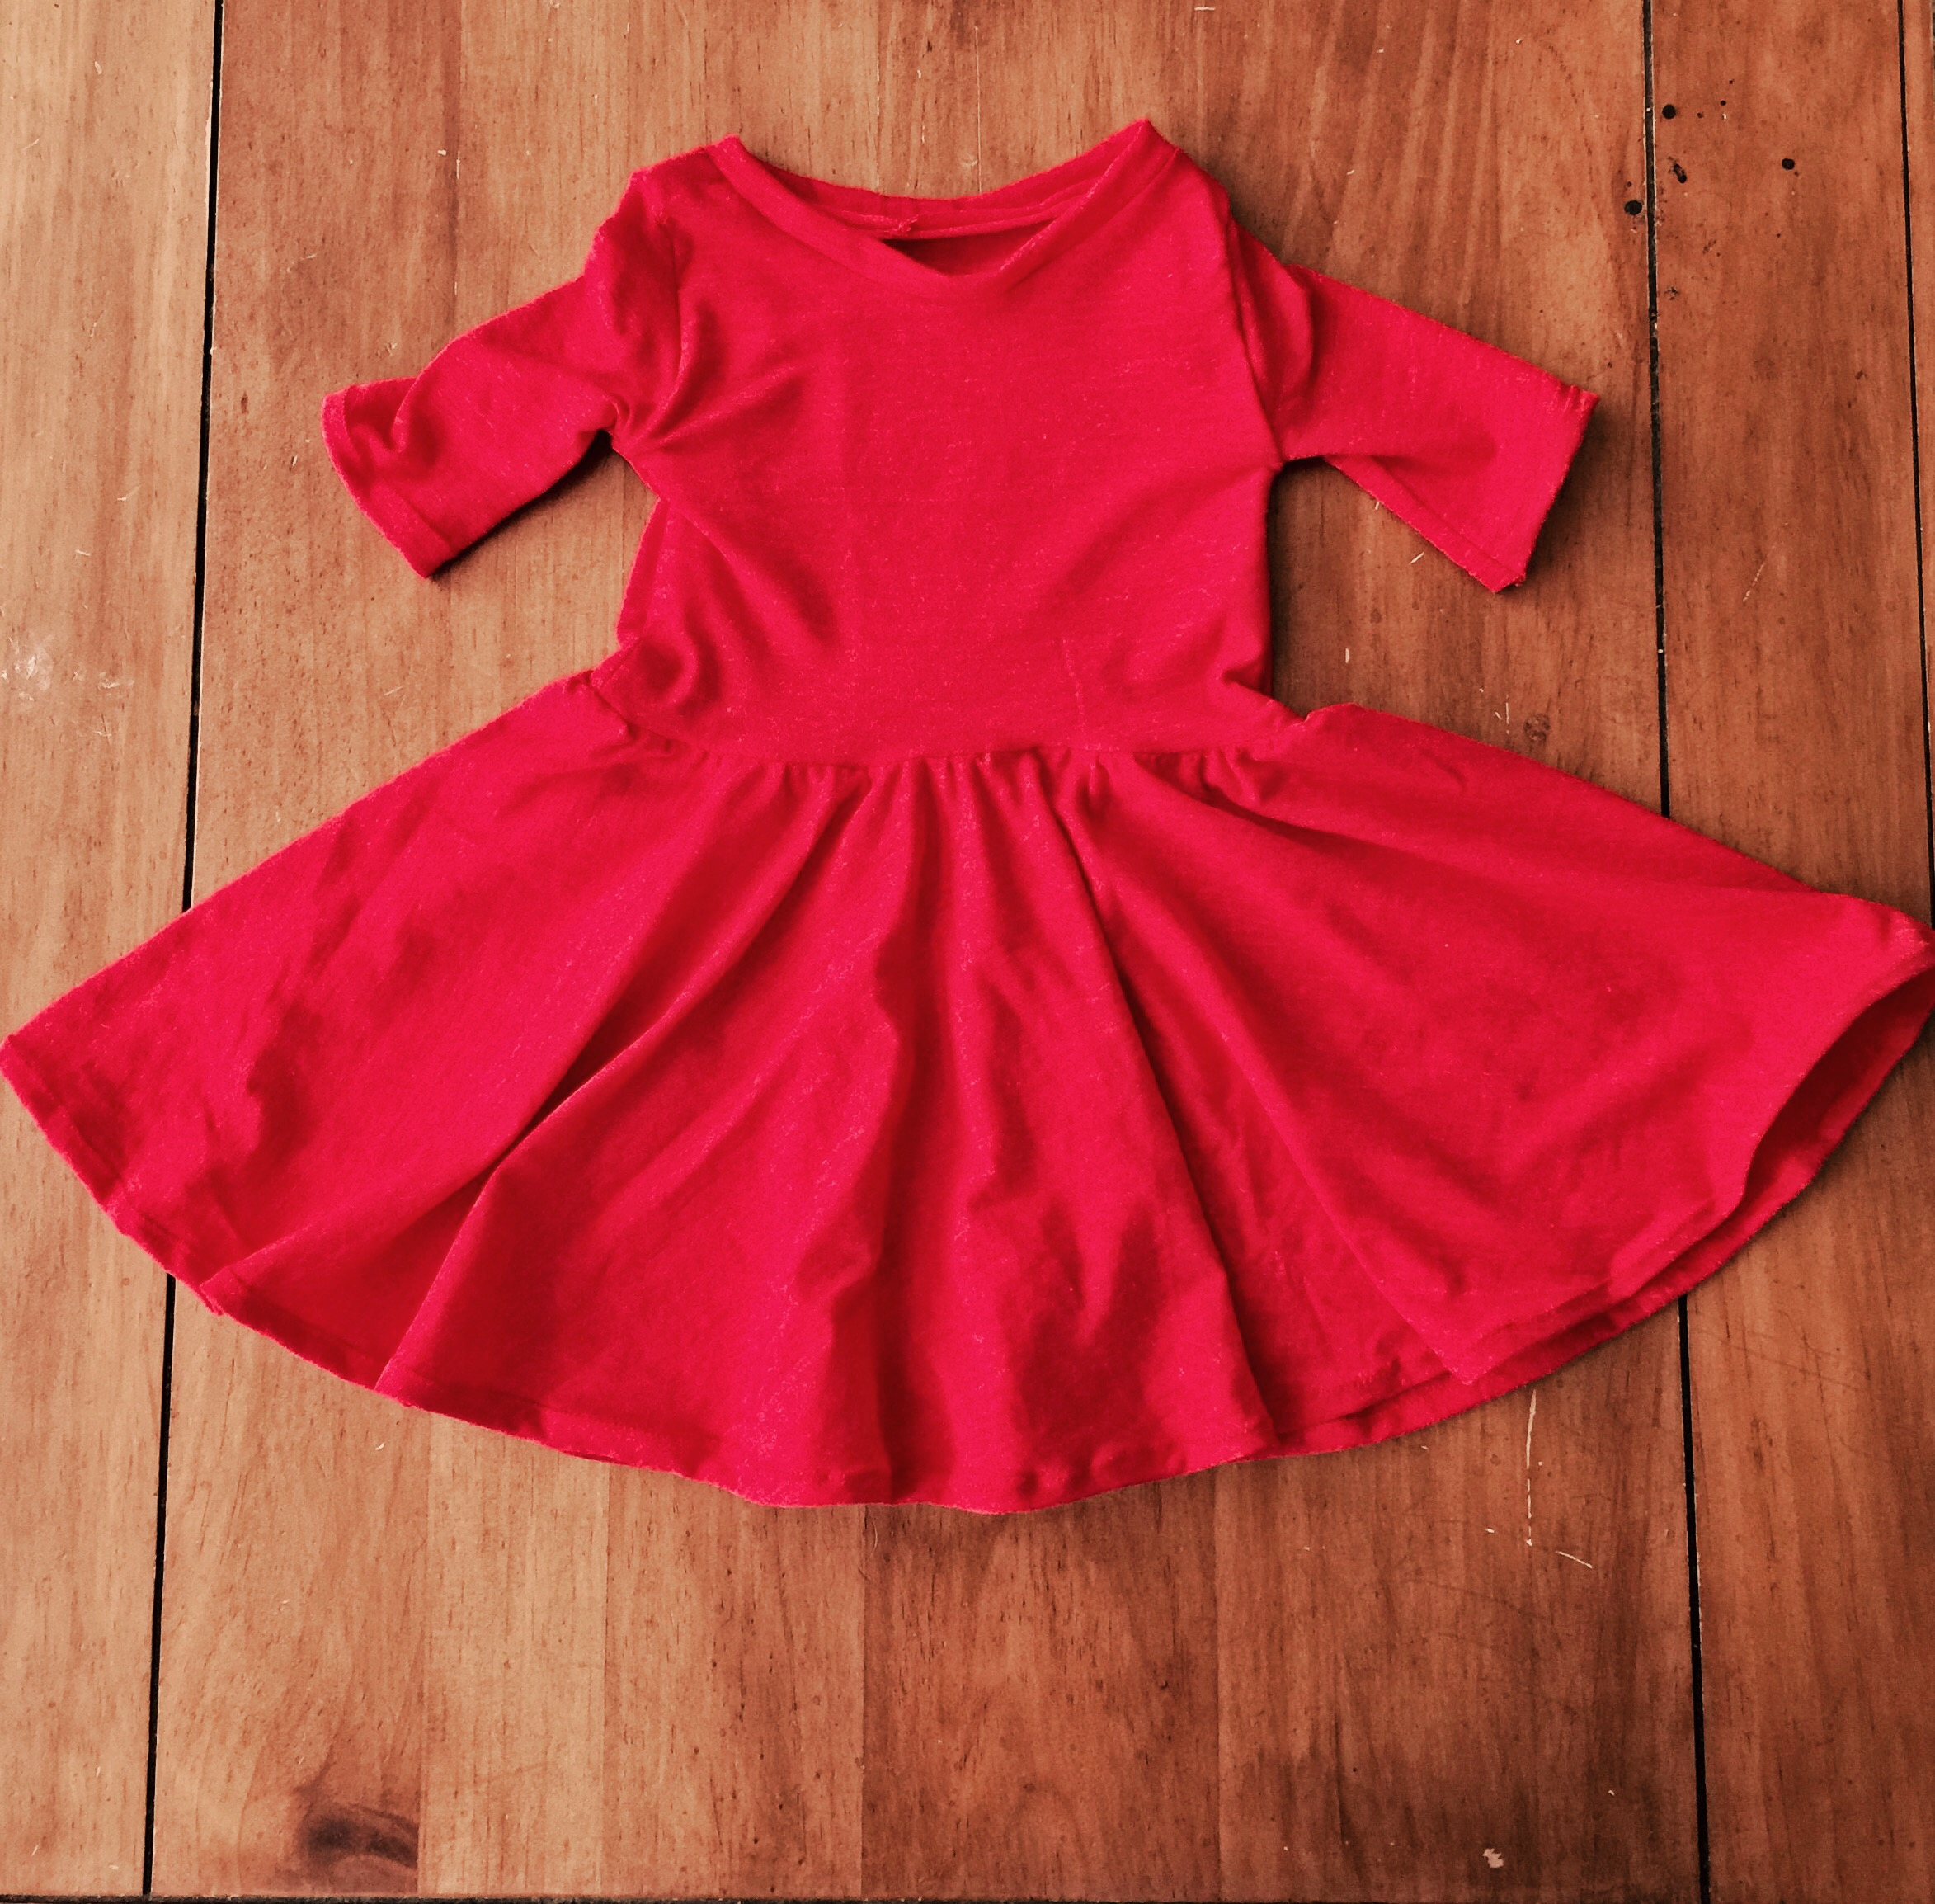 Toddler Twirly Dress Sewing Tutorial | The Sara Project